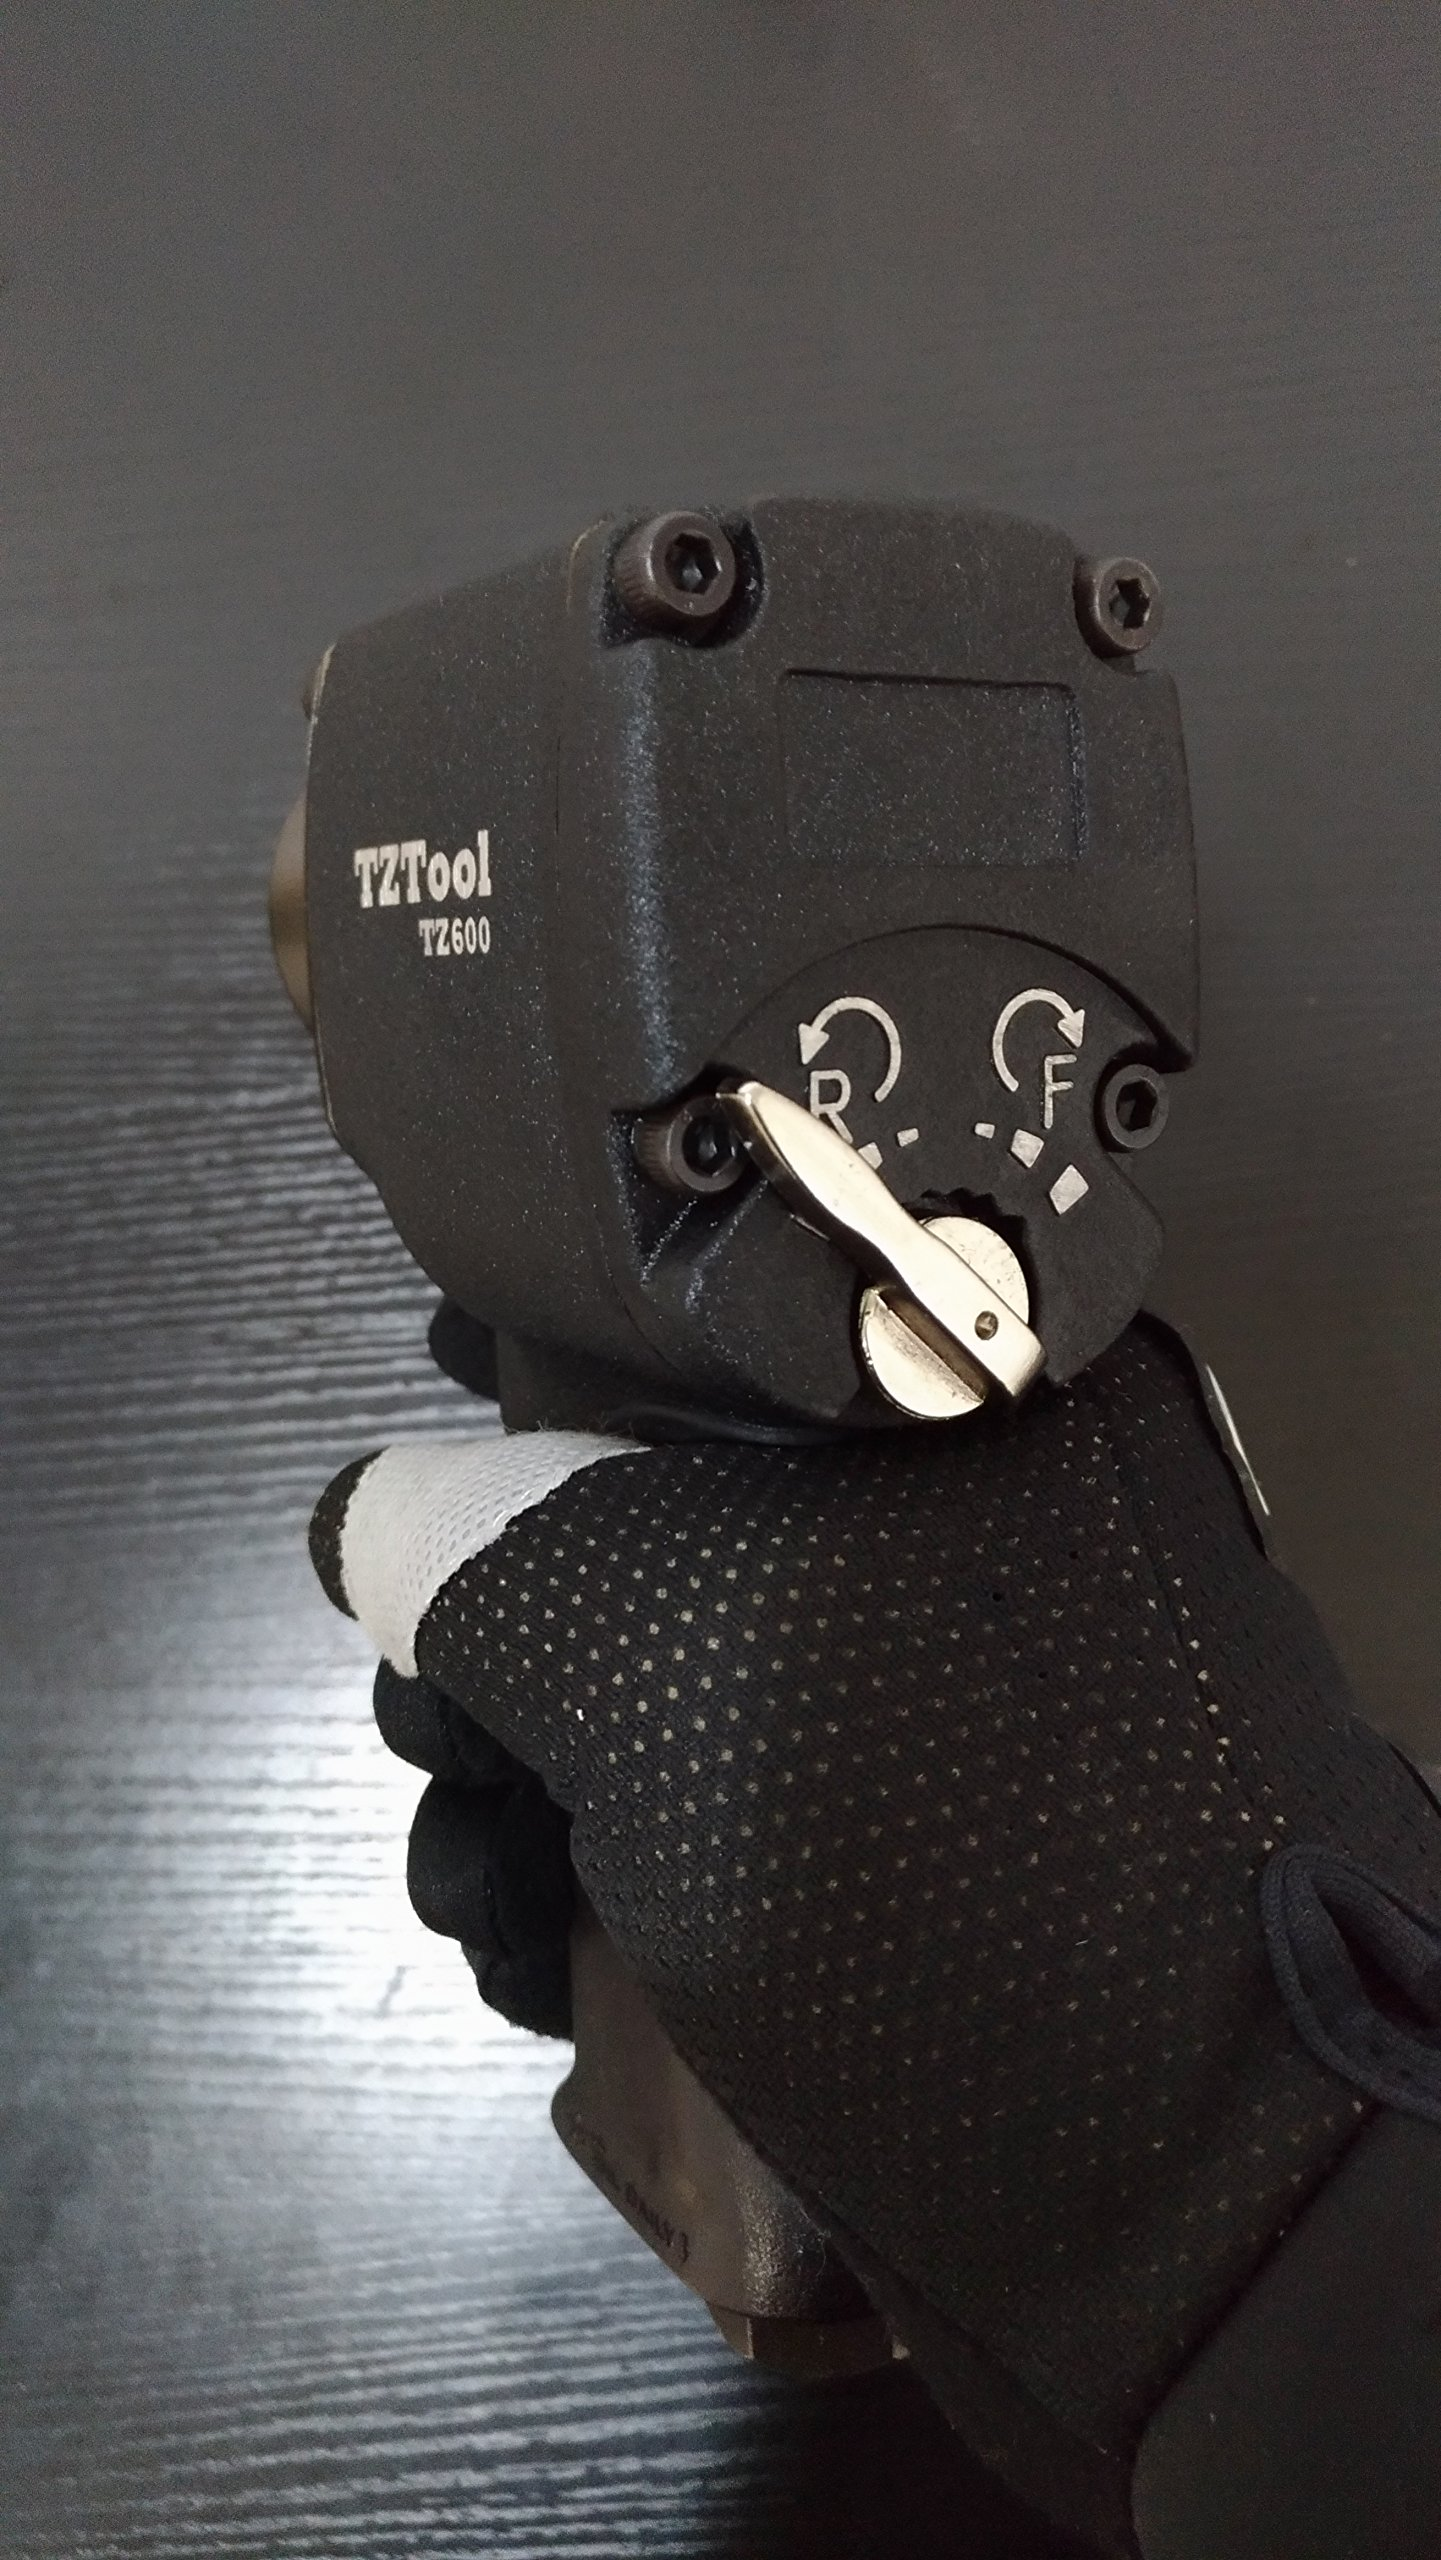 TZTOOL 1/2'' Compact impact wrench with 3/8'' impact adapter by TZTOOL (Image #2)